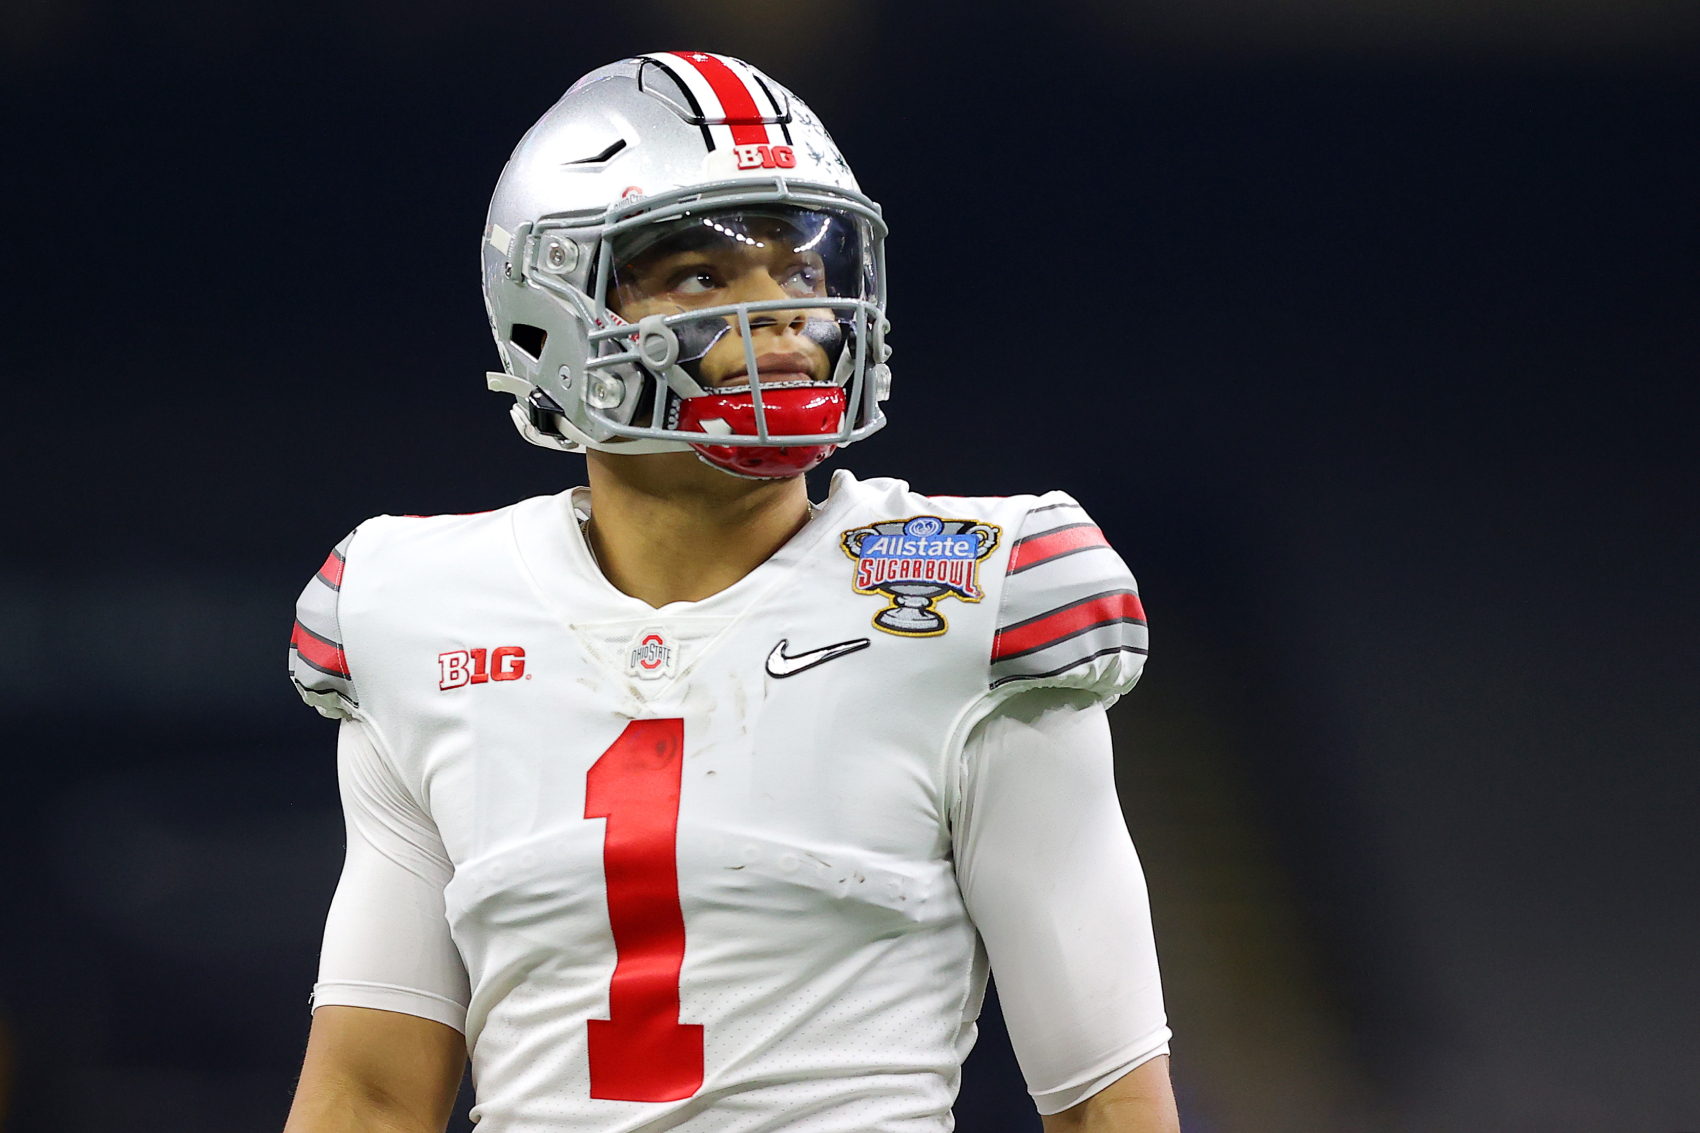 Justin Fields and Ohio State had some extra motivation for the CFP semifinals. Now, Fields might have some for the championship game.